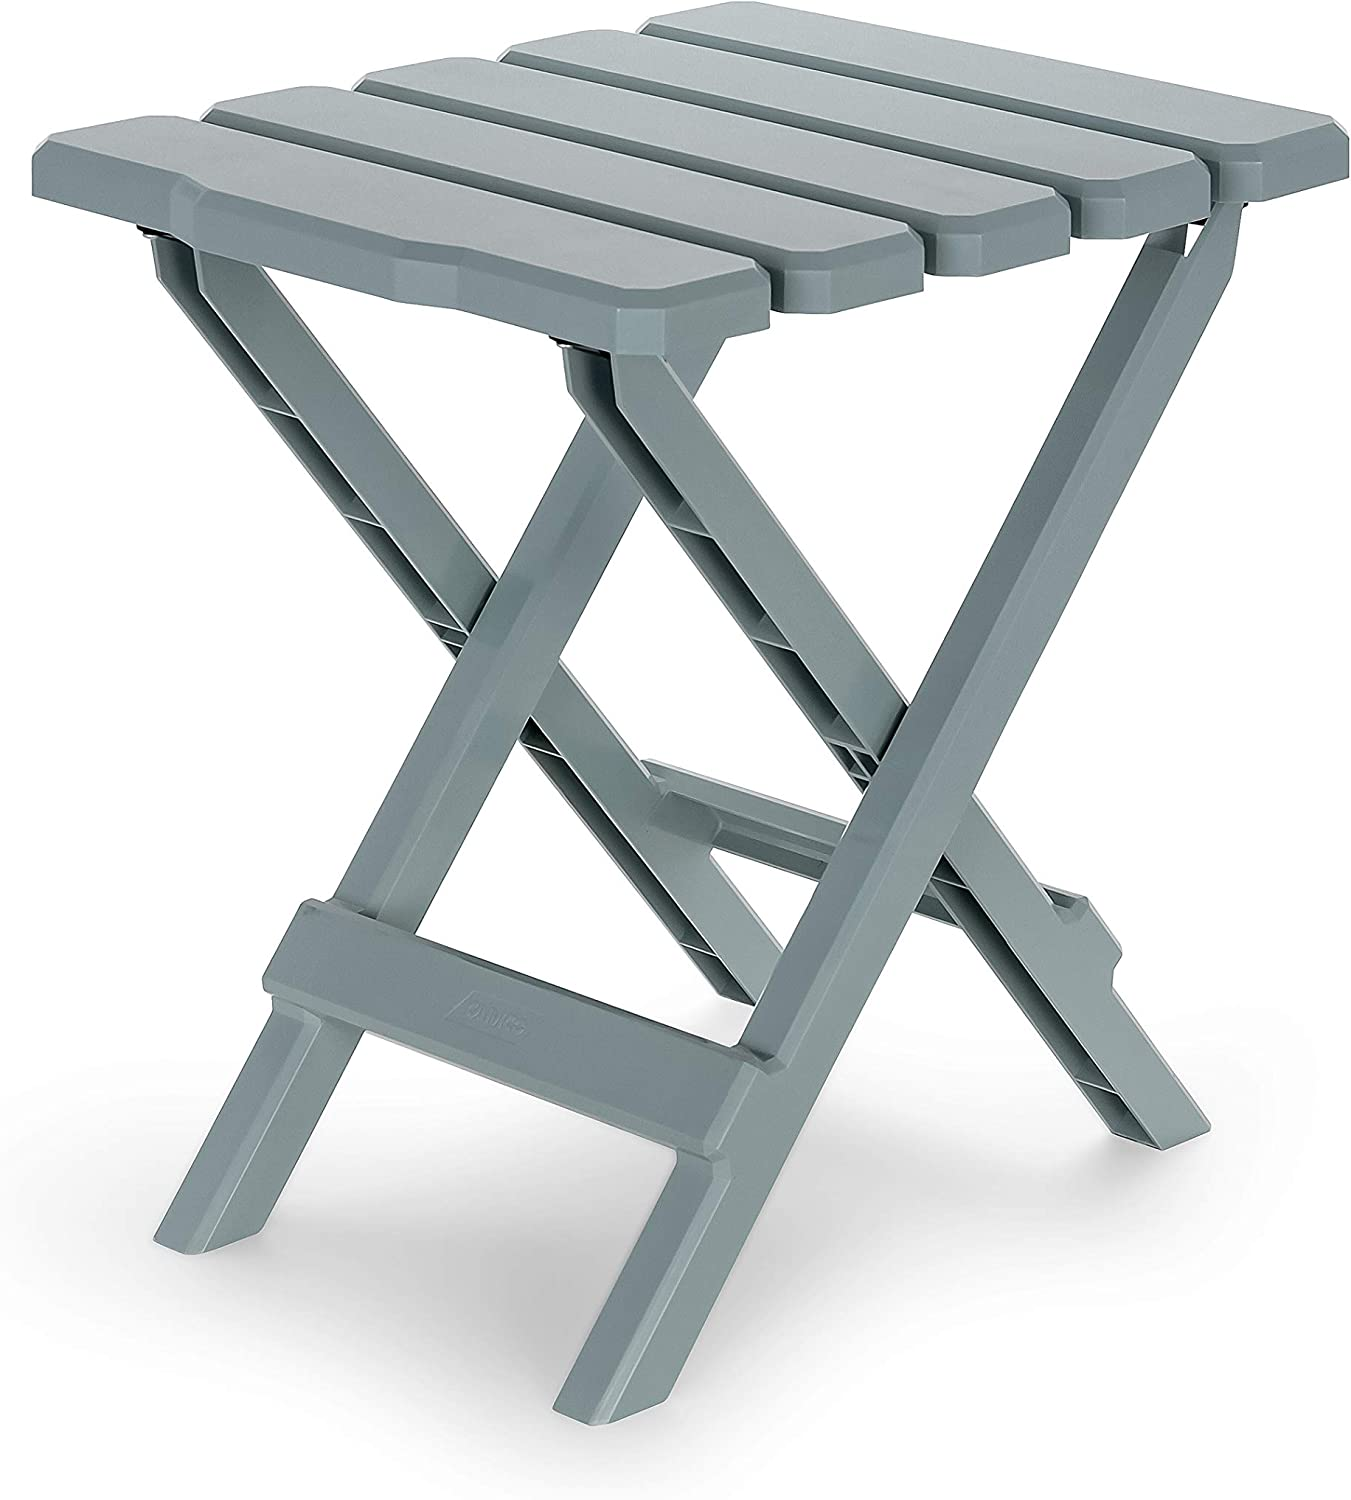 Camco Adirondack Portable Outdoor Folding Side Table - Perfect for The Beach, Camping, Picnics, Cookouts and More - Weatherproof and Rust Resistant - Gray (21032)